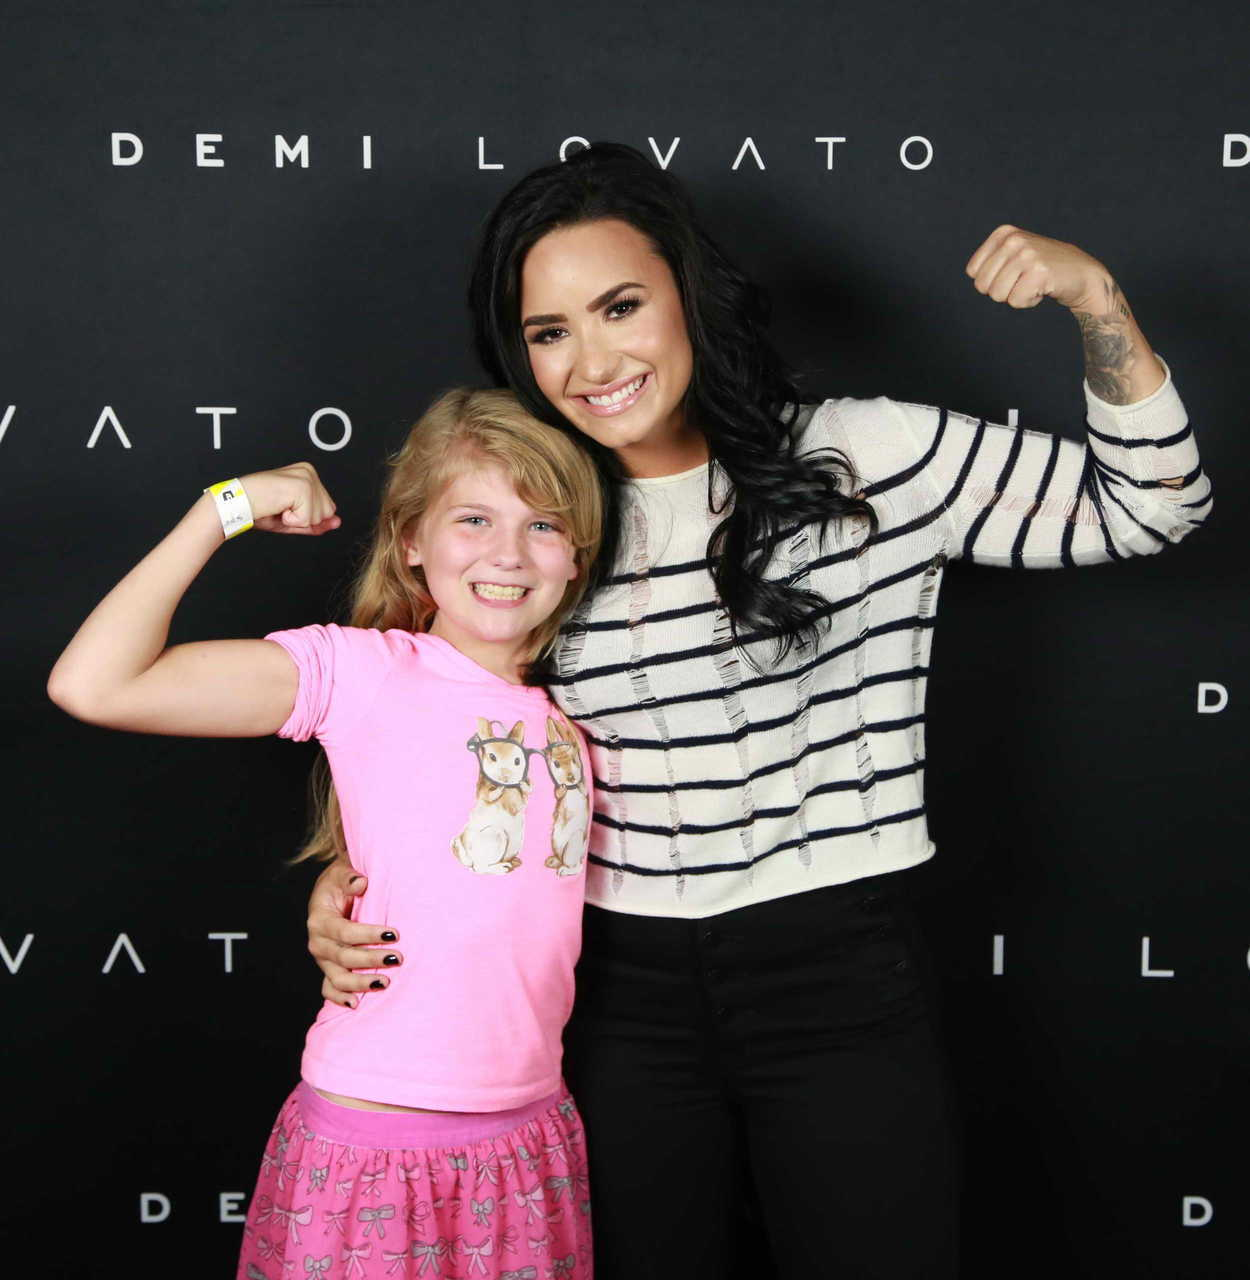 Demi Lovato At The Meet And Greet In Kansas City 08062016